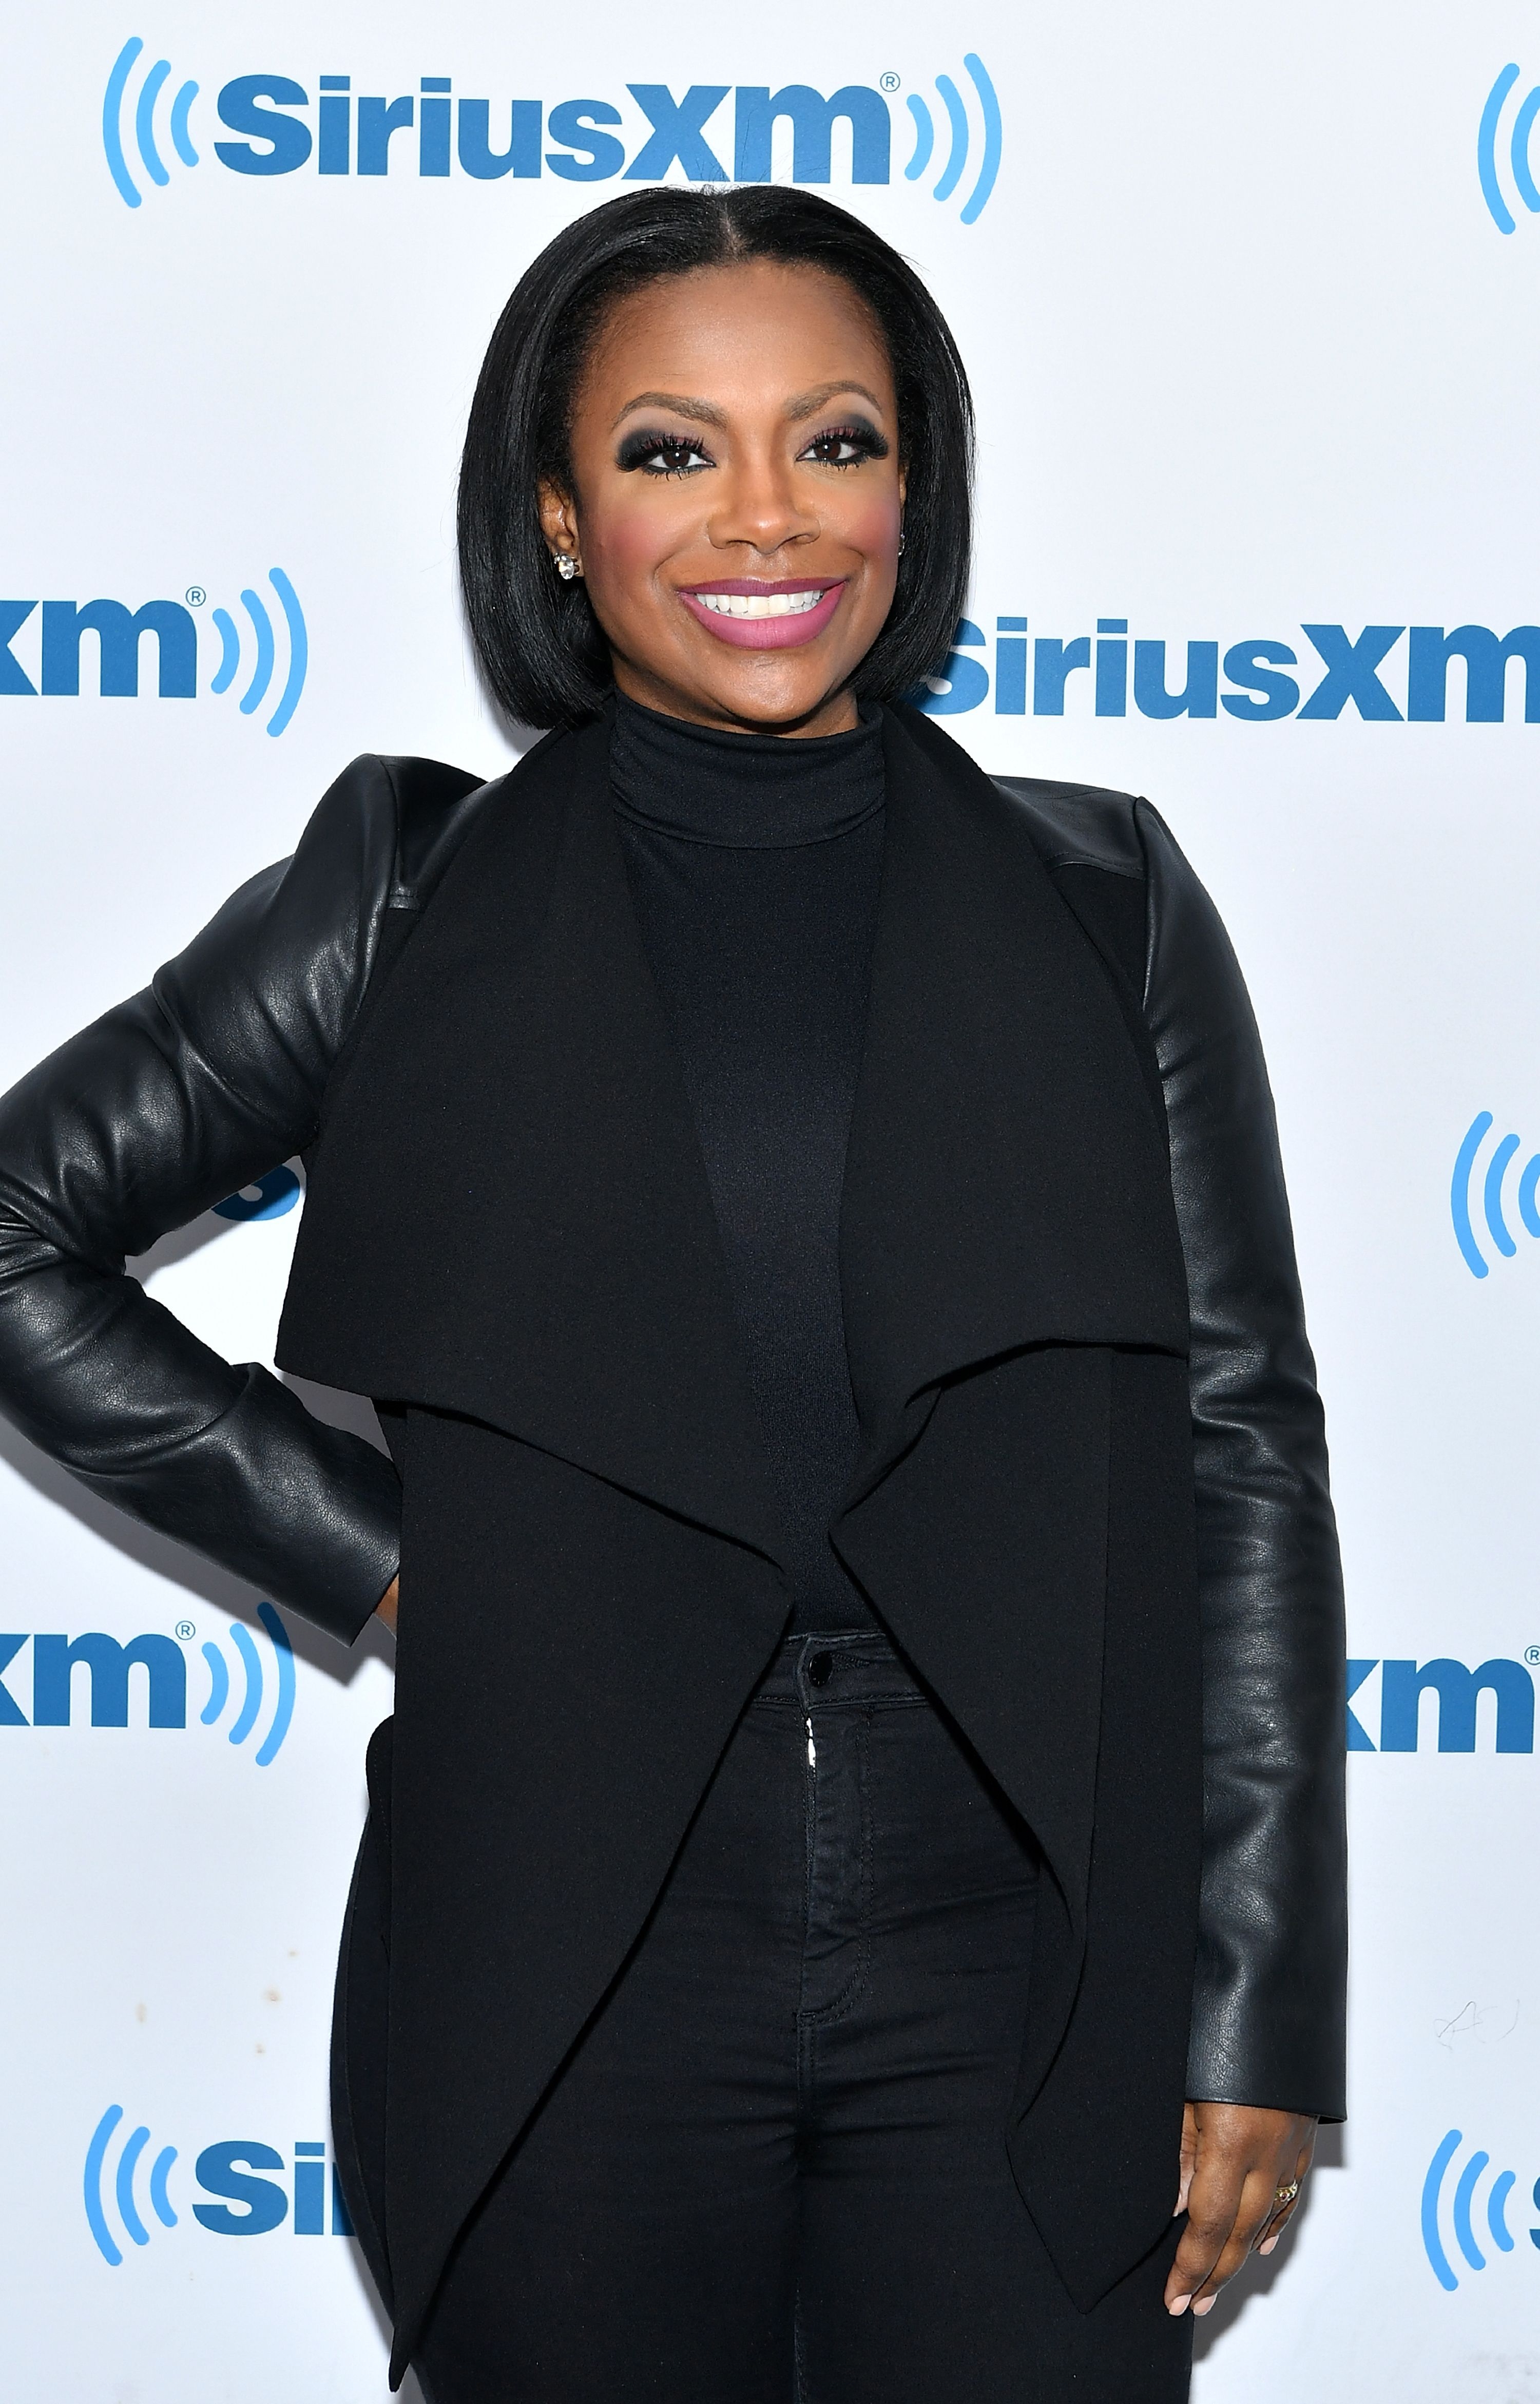 Kandi Burruss visits SiriusXM Studios on March 5, 2018 in New York City. | Photo: Getty Images.